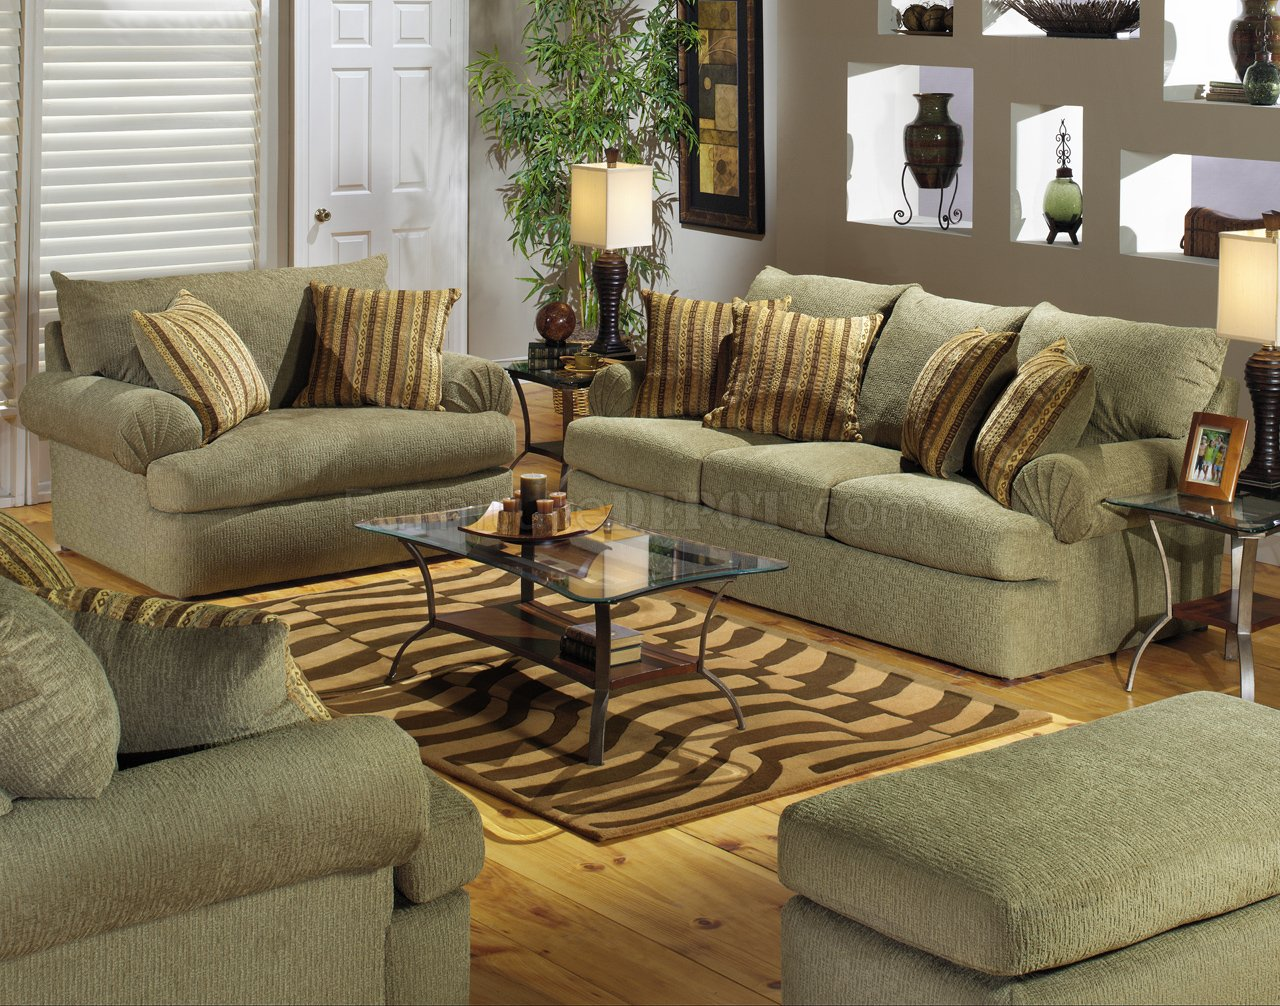 Olive Fabric Modern Couch  Loveseat Set wOptional Items